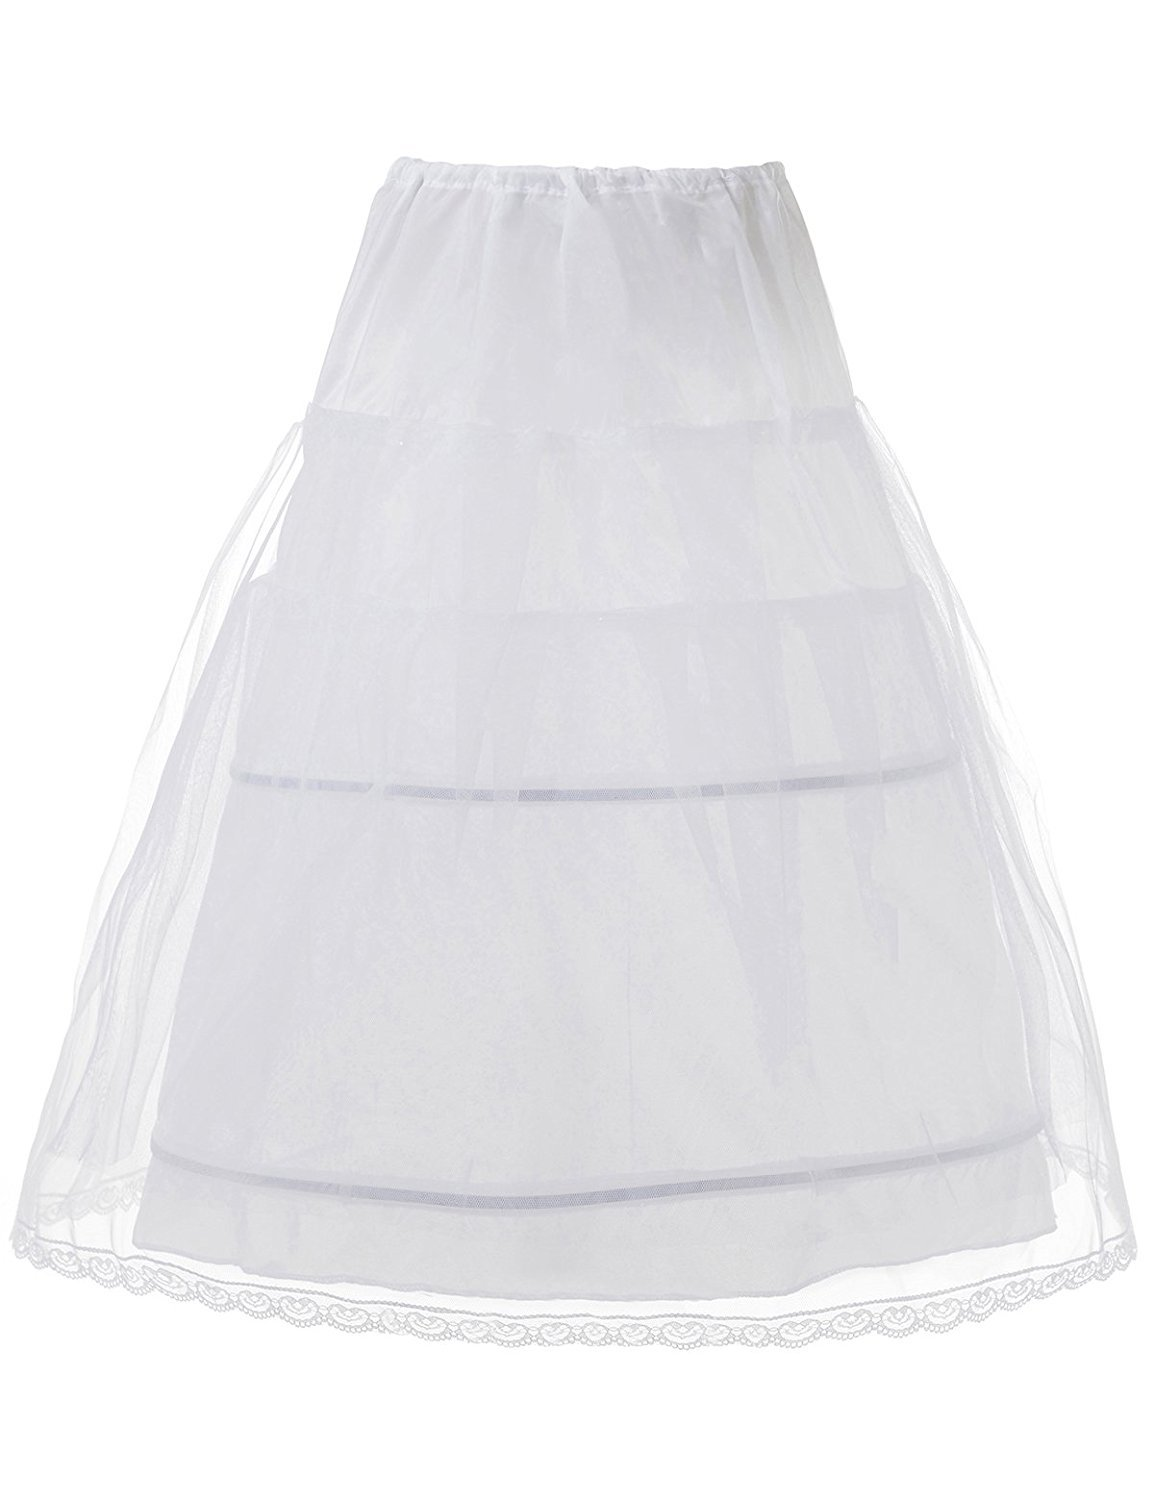 JCdress Kids Crinoline Petticoat Flower Girl Wedding Underskirt Slip (White) by JCdress